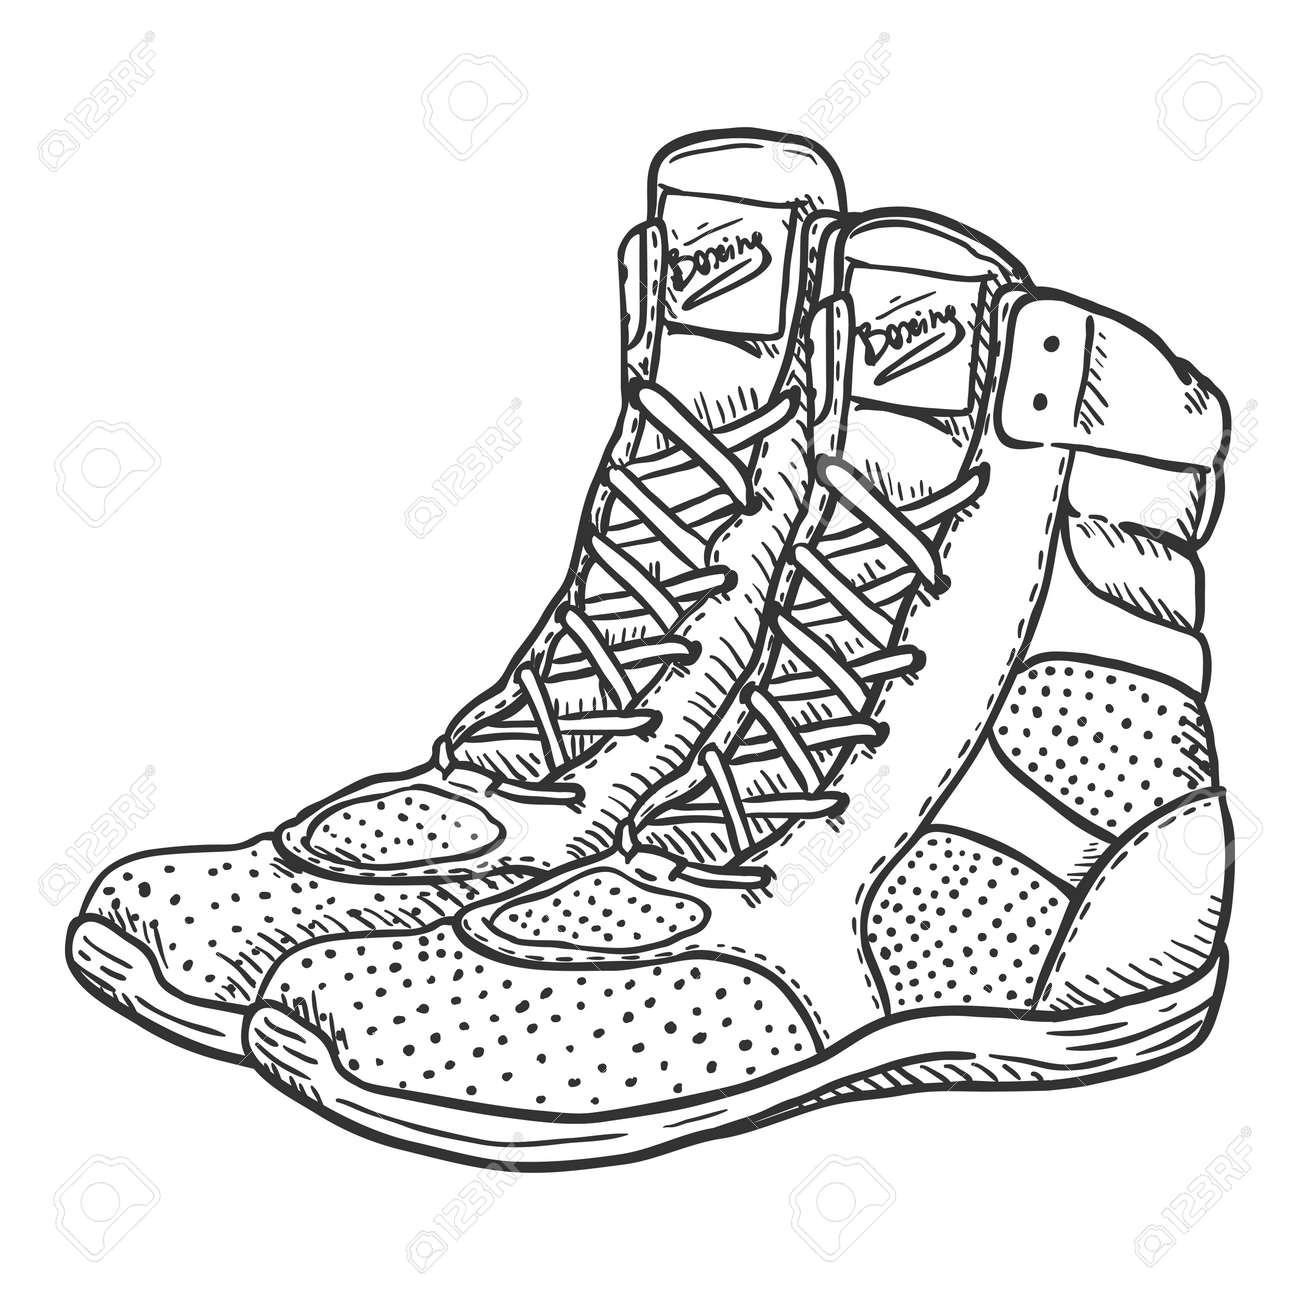 Vector Hand Drawn Sketch Boxing Shoes - 168798656